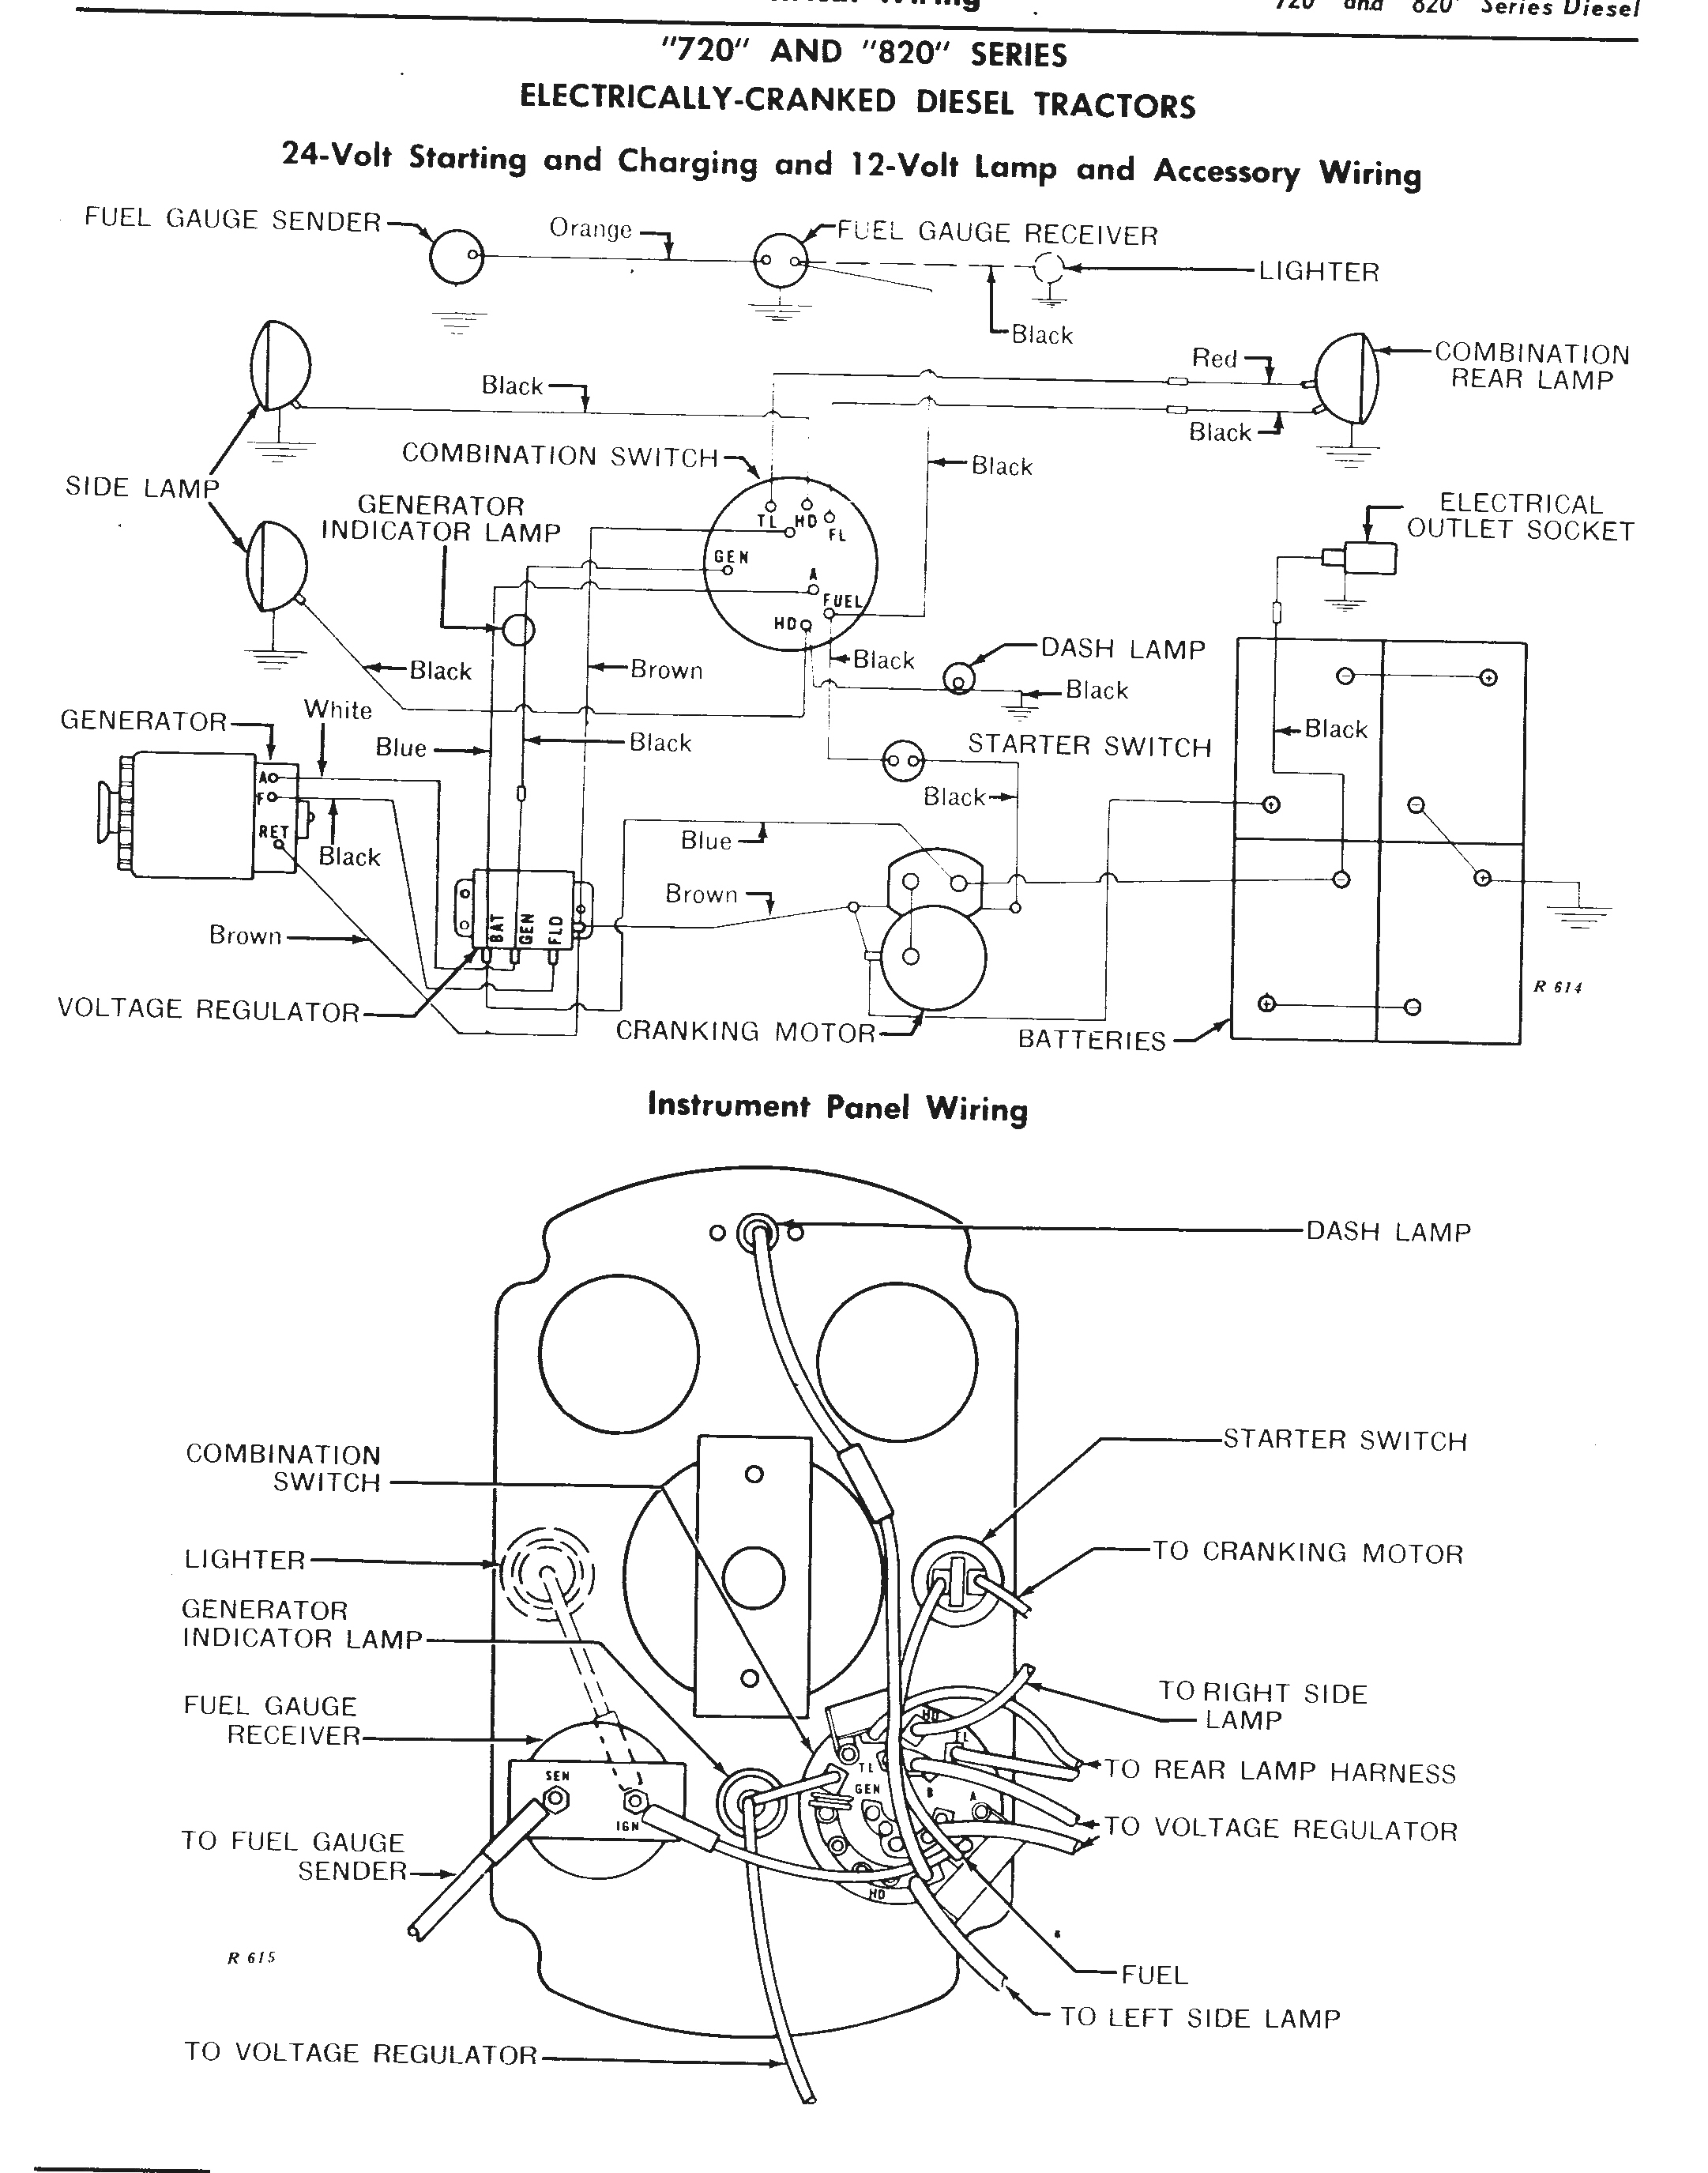 the john deere 24 volt electrical system explained John Deere Model B Wiring Diagram john deere 310 backhoe wiring diagram John Deere 310B Backhoe John Deere Light Wiring Diagram Wiring Diagram John Deere 310J